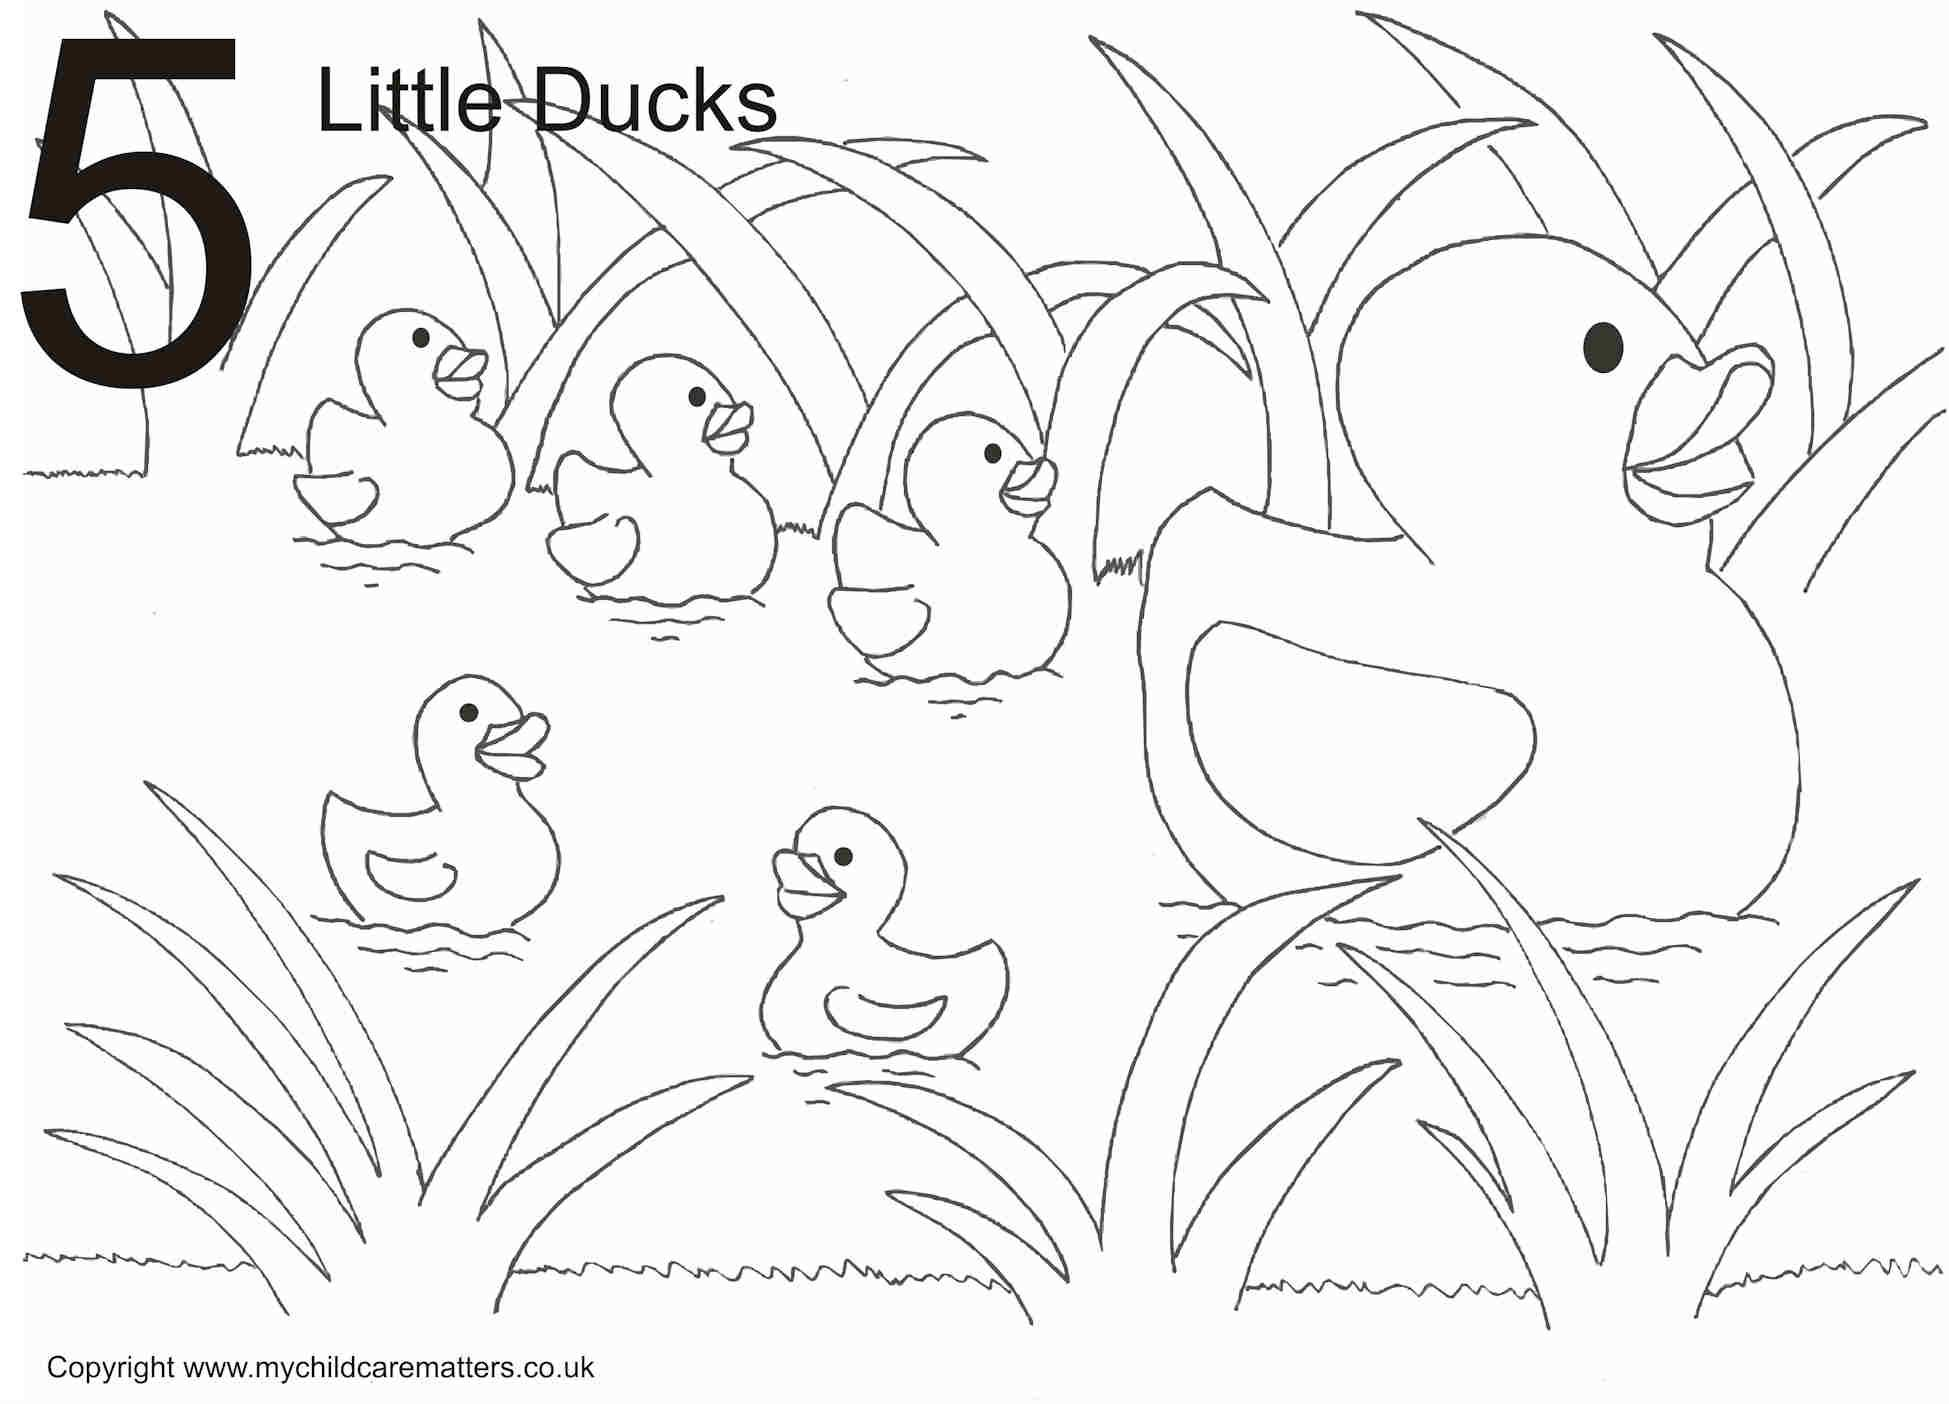 Little Ducks Colouring Page 5 Little Ducks Colouring